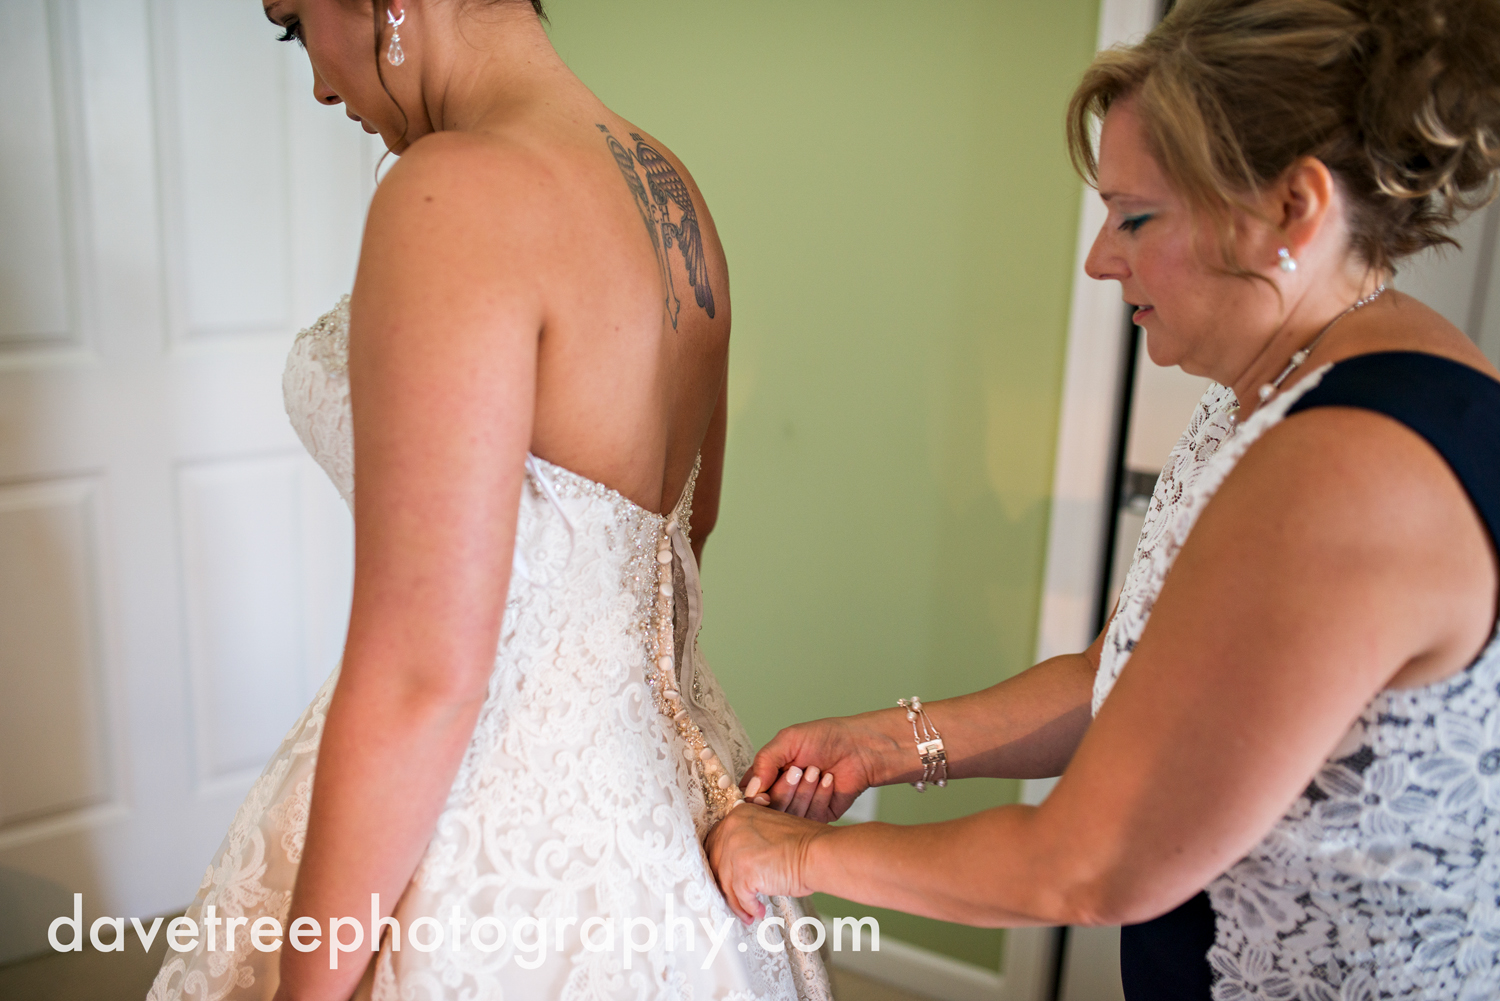 veranda_wedding_photographer_st_joseph_wedding_097.jpg